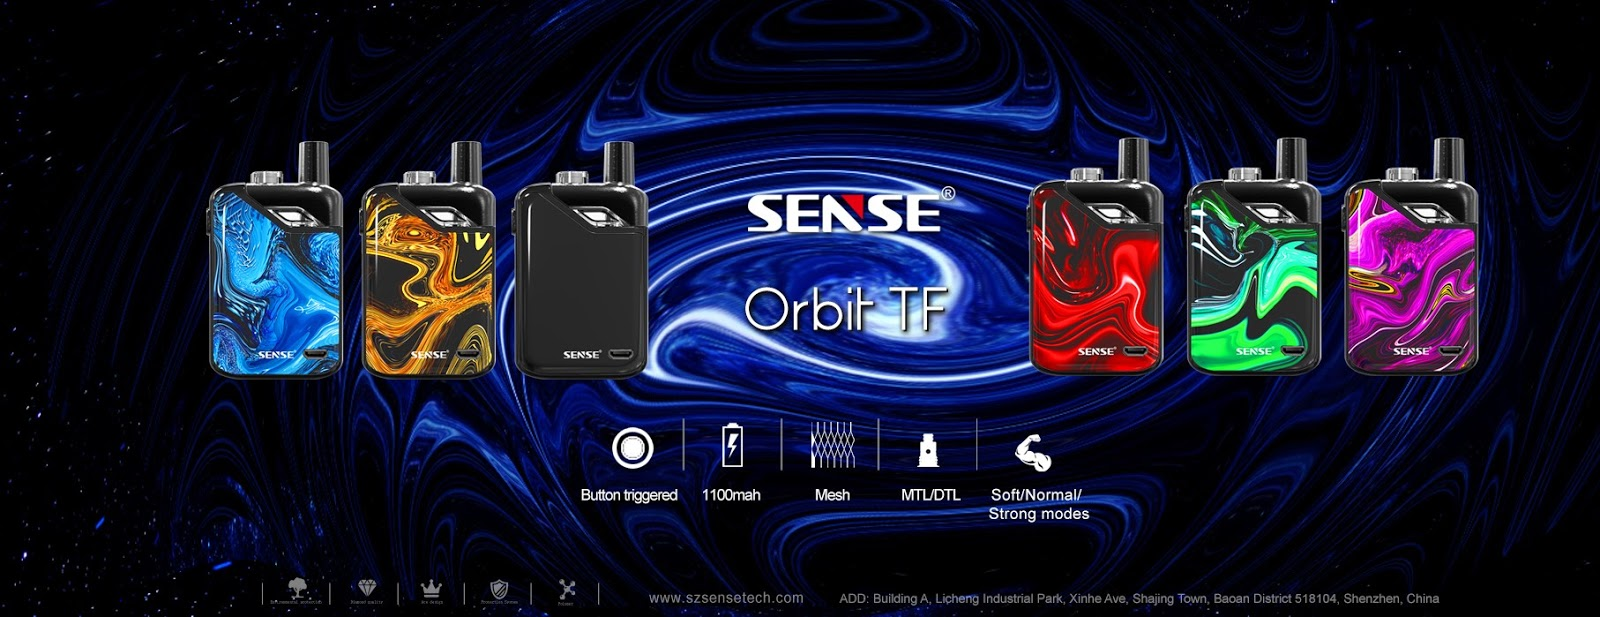 New Arrival Sense Orbit Tf Pod System Starter Kit 1100mah 3ml